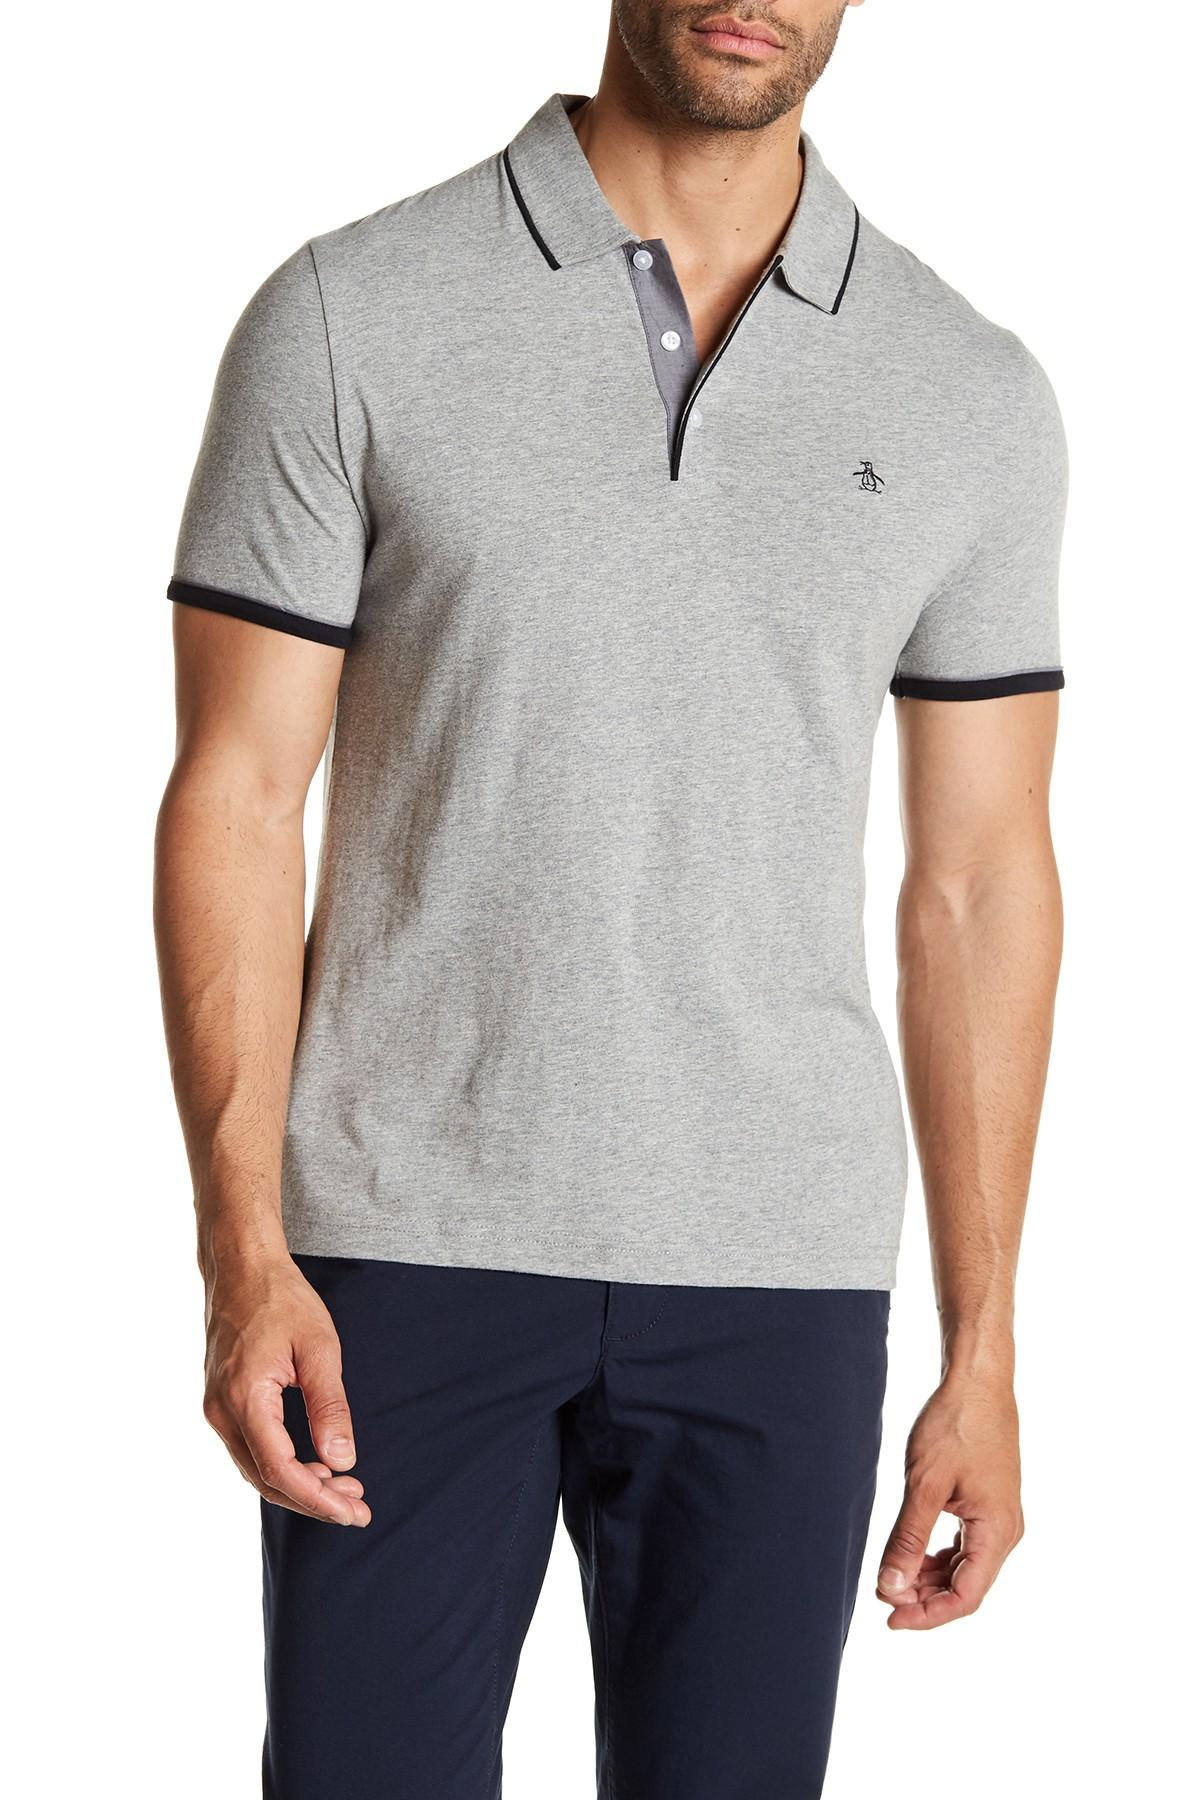 Lyst - Original Penguin Contrast Trim Mearl Polo Shirt in Gray for Men 1d85b35f6656a